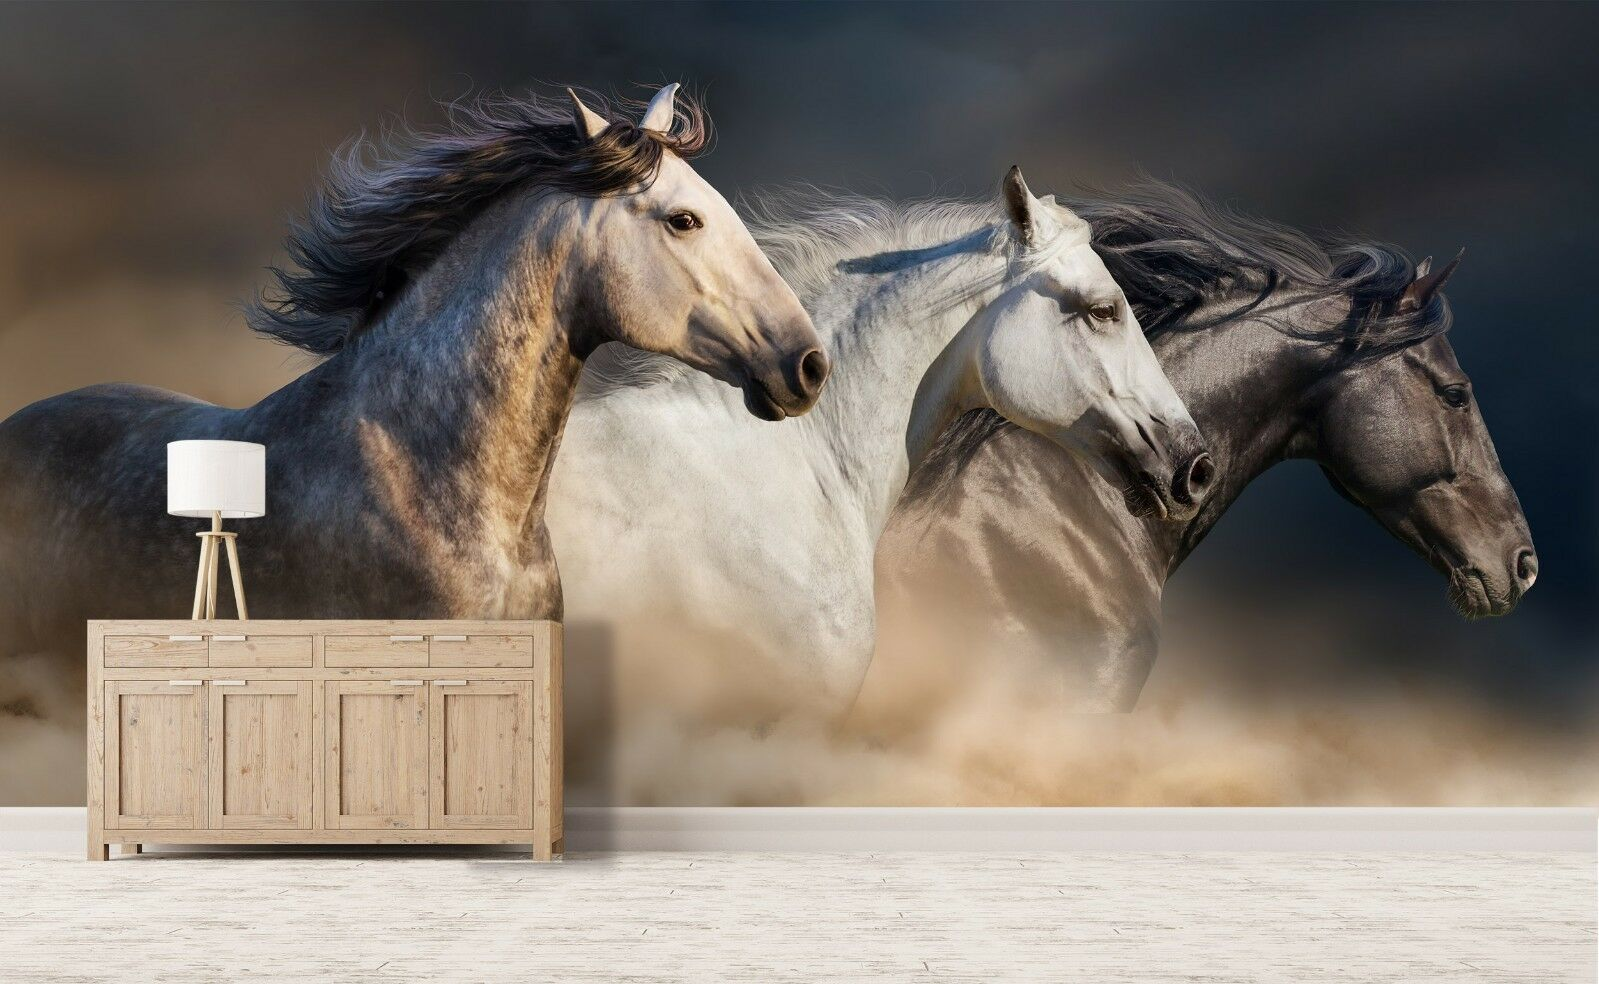 3D Dust Horse Group 16 Wall Paper Exclusive MXY Wallpaper Mural Decal Indoor